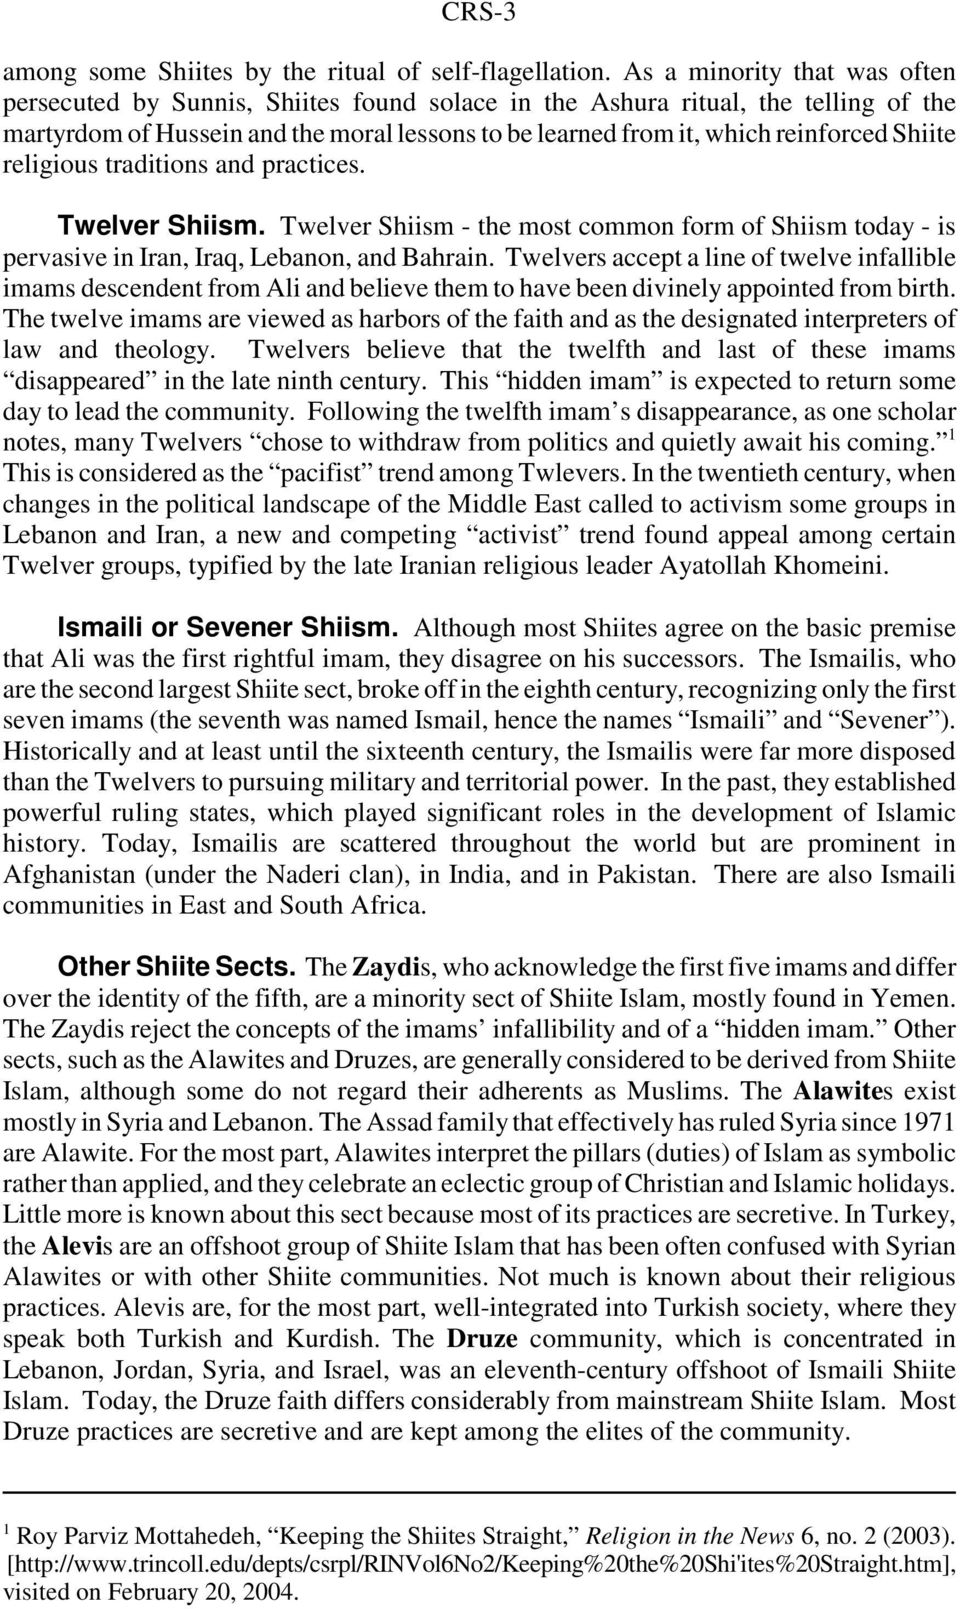 Shiite religious traditions and practices. Twelver Shiism. Twelver Shiism - the most common form of Shiism today - is pervasive in Iran, Iraq, Lebanon, and Bahrain.